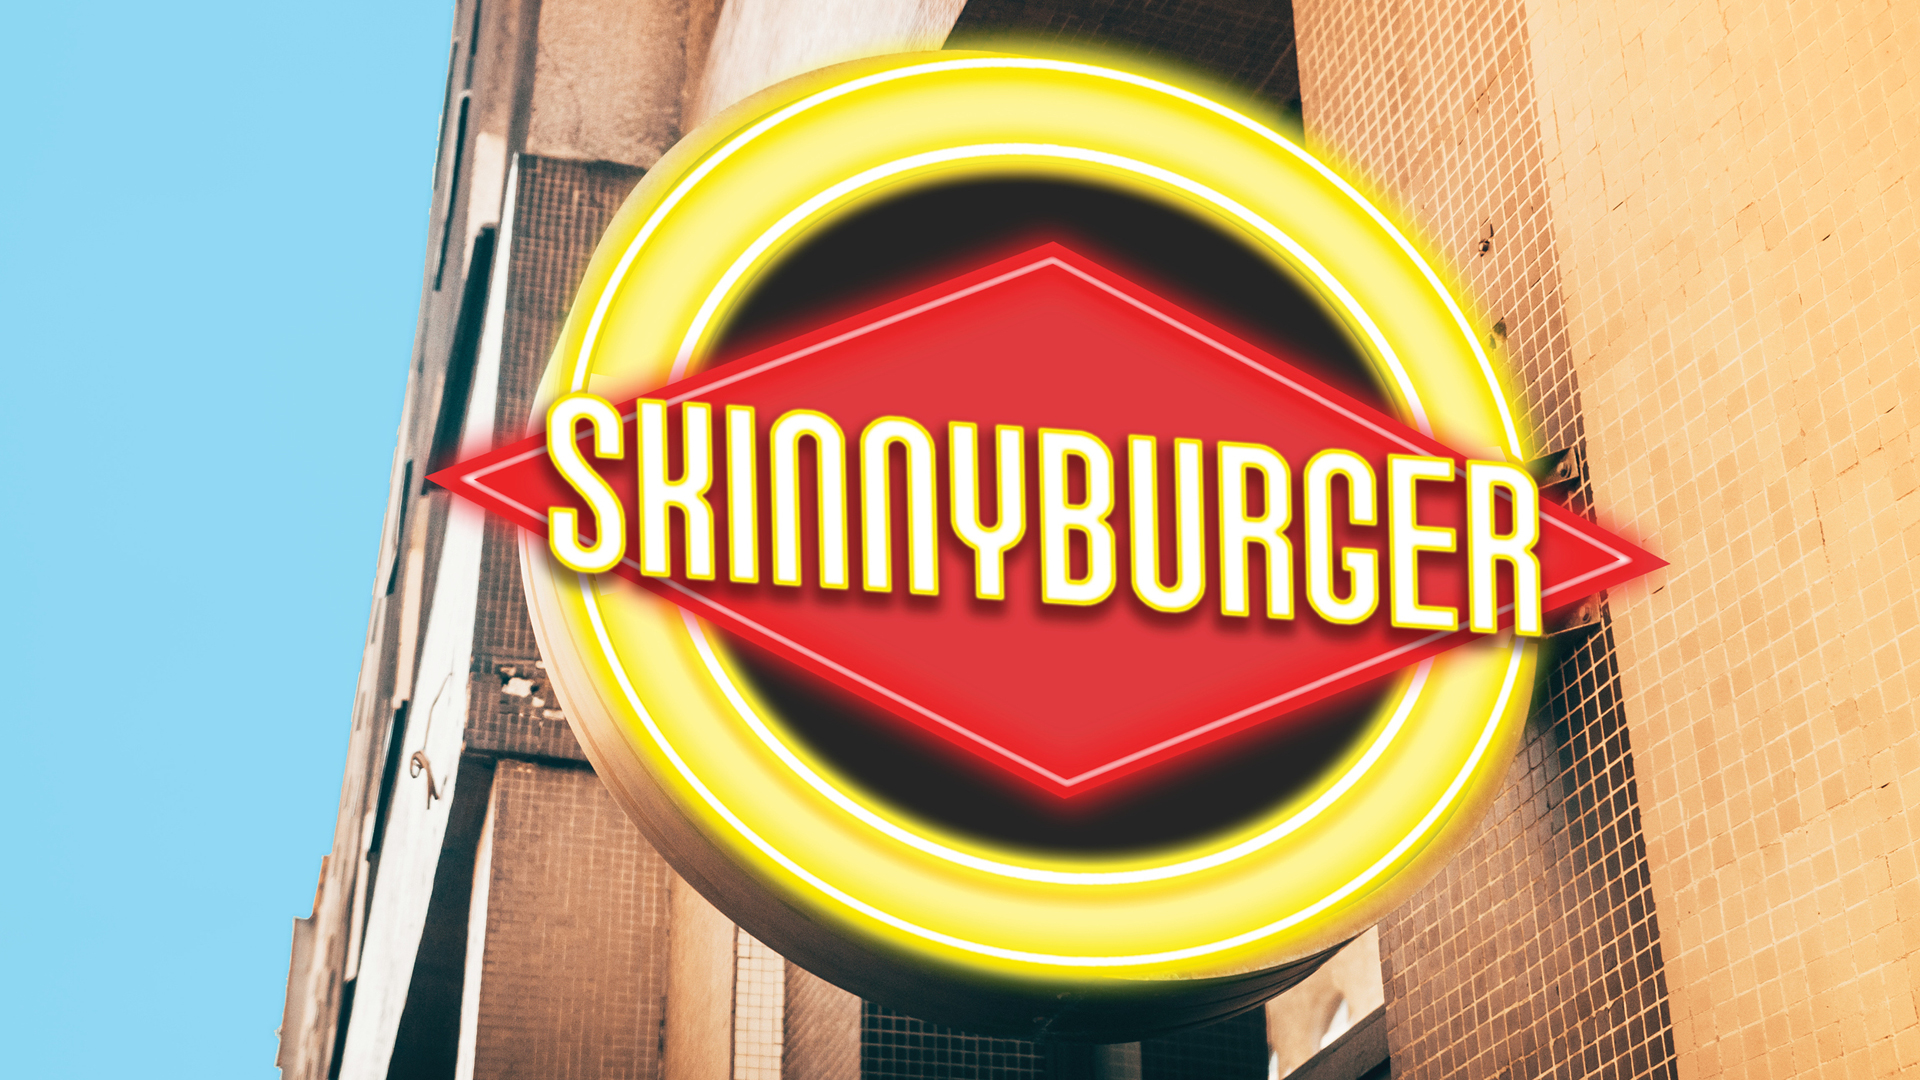 A sign for the newly rebranded Skinnyburger, the Los Angeles-based chain formerly known as Fatburger, is seen in an image provided by the company.